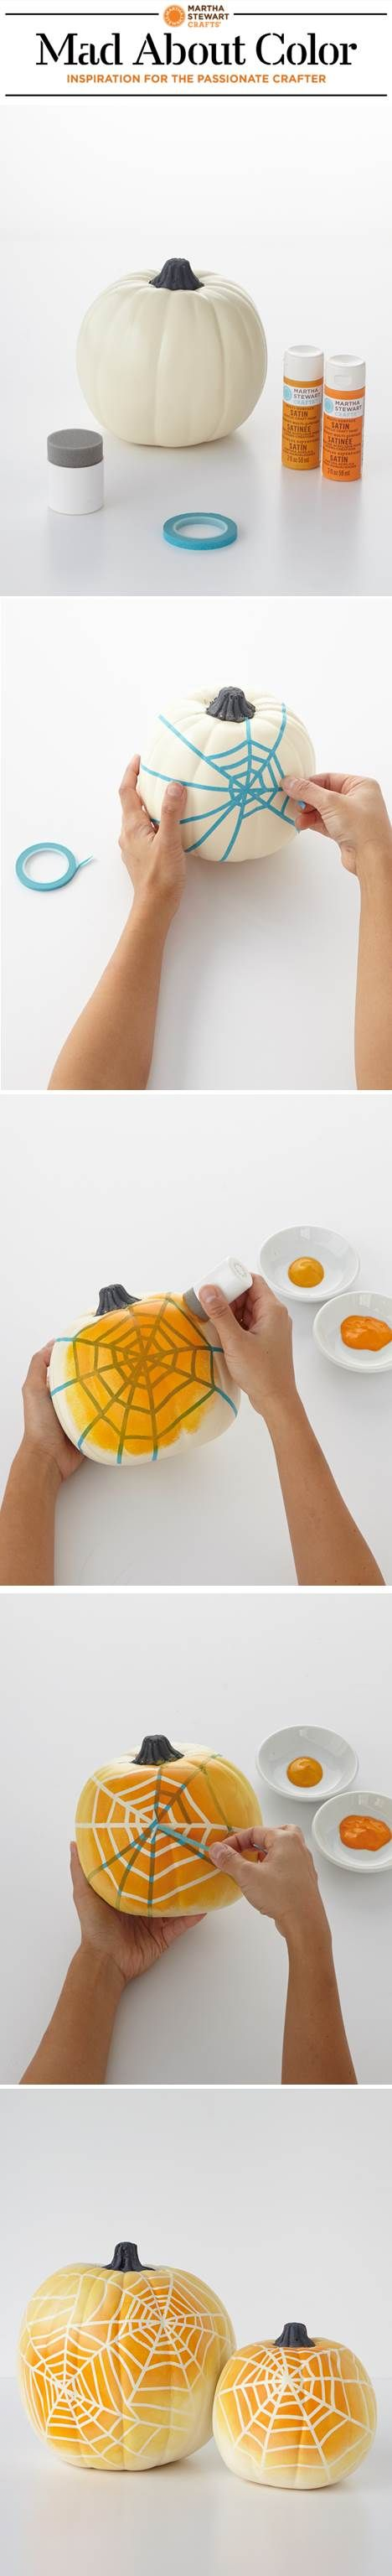 #DIY ombre spiderweb pumpkins with paints and tools from #marthastewartcrafts: